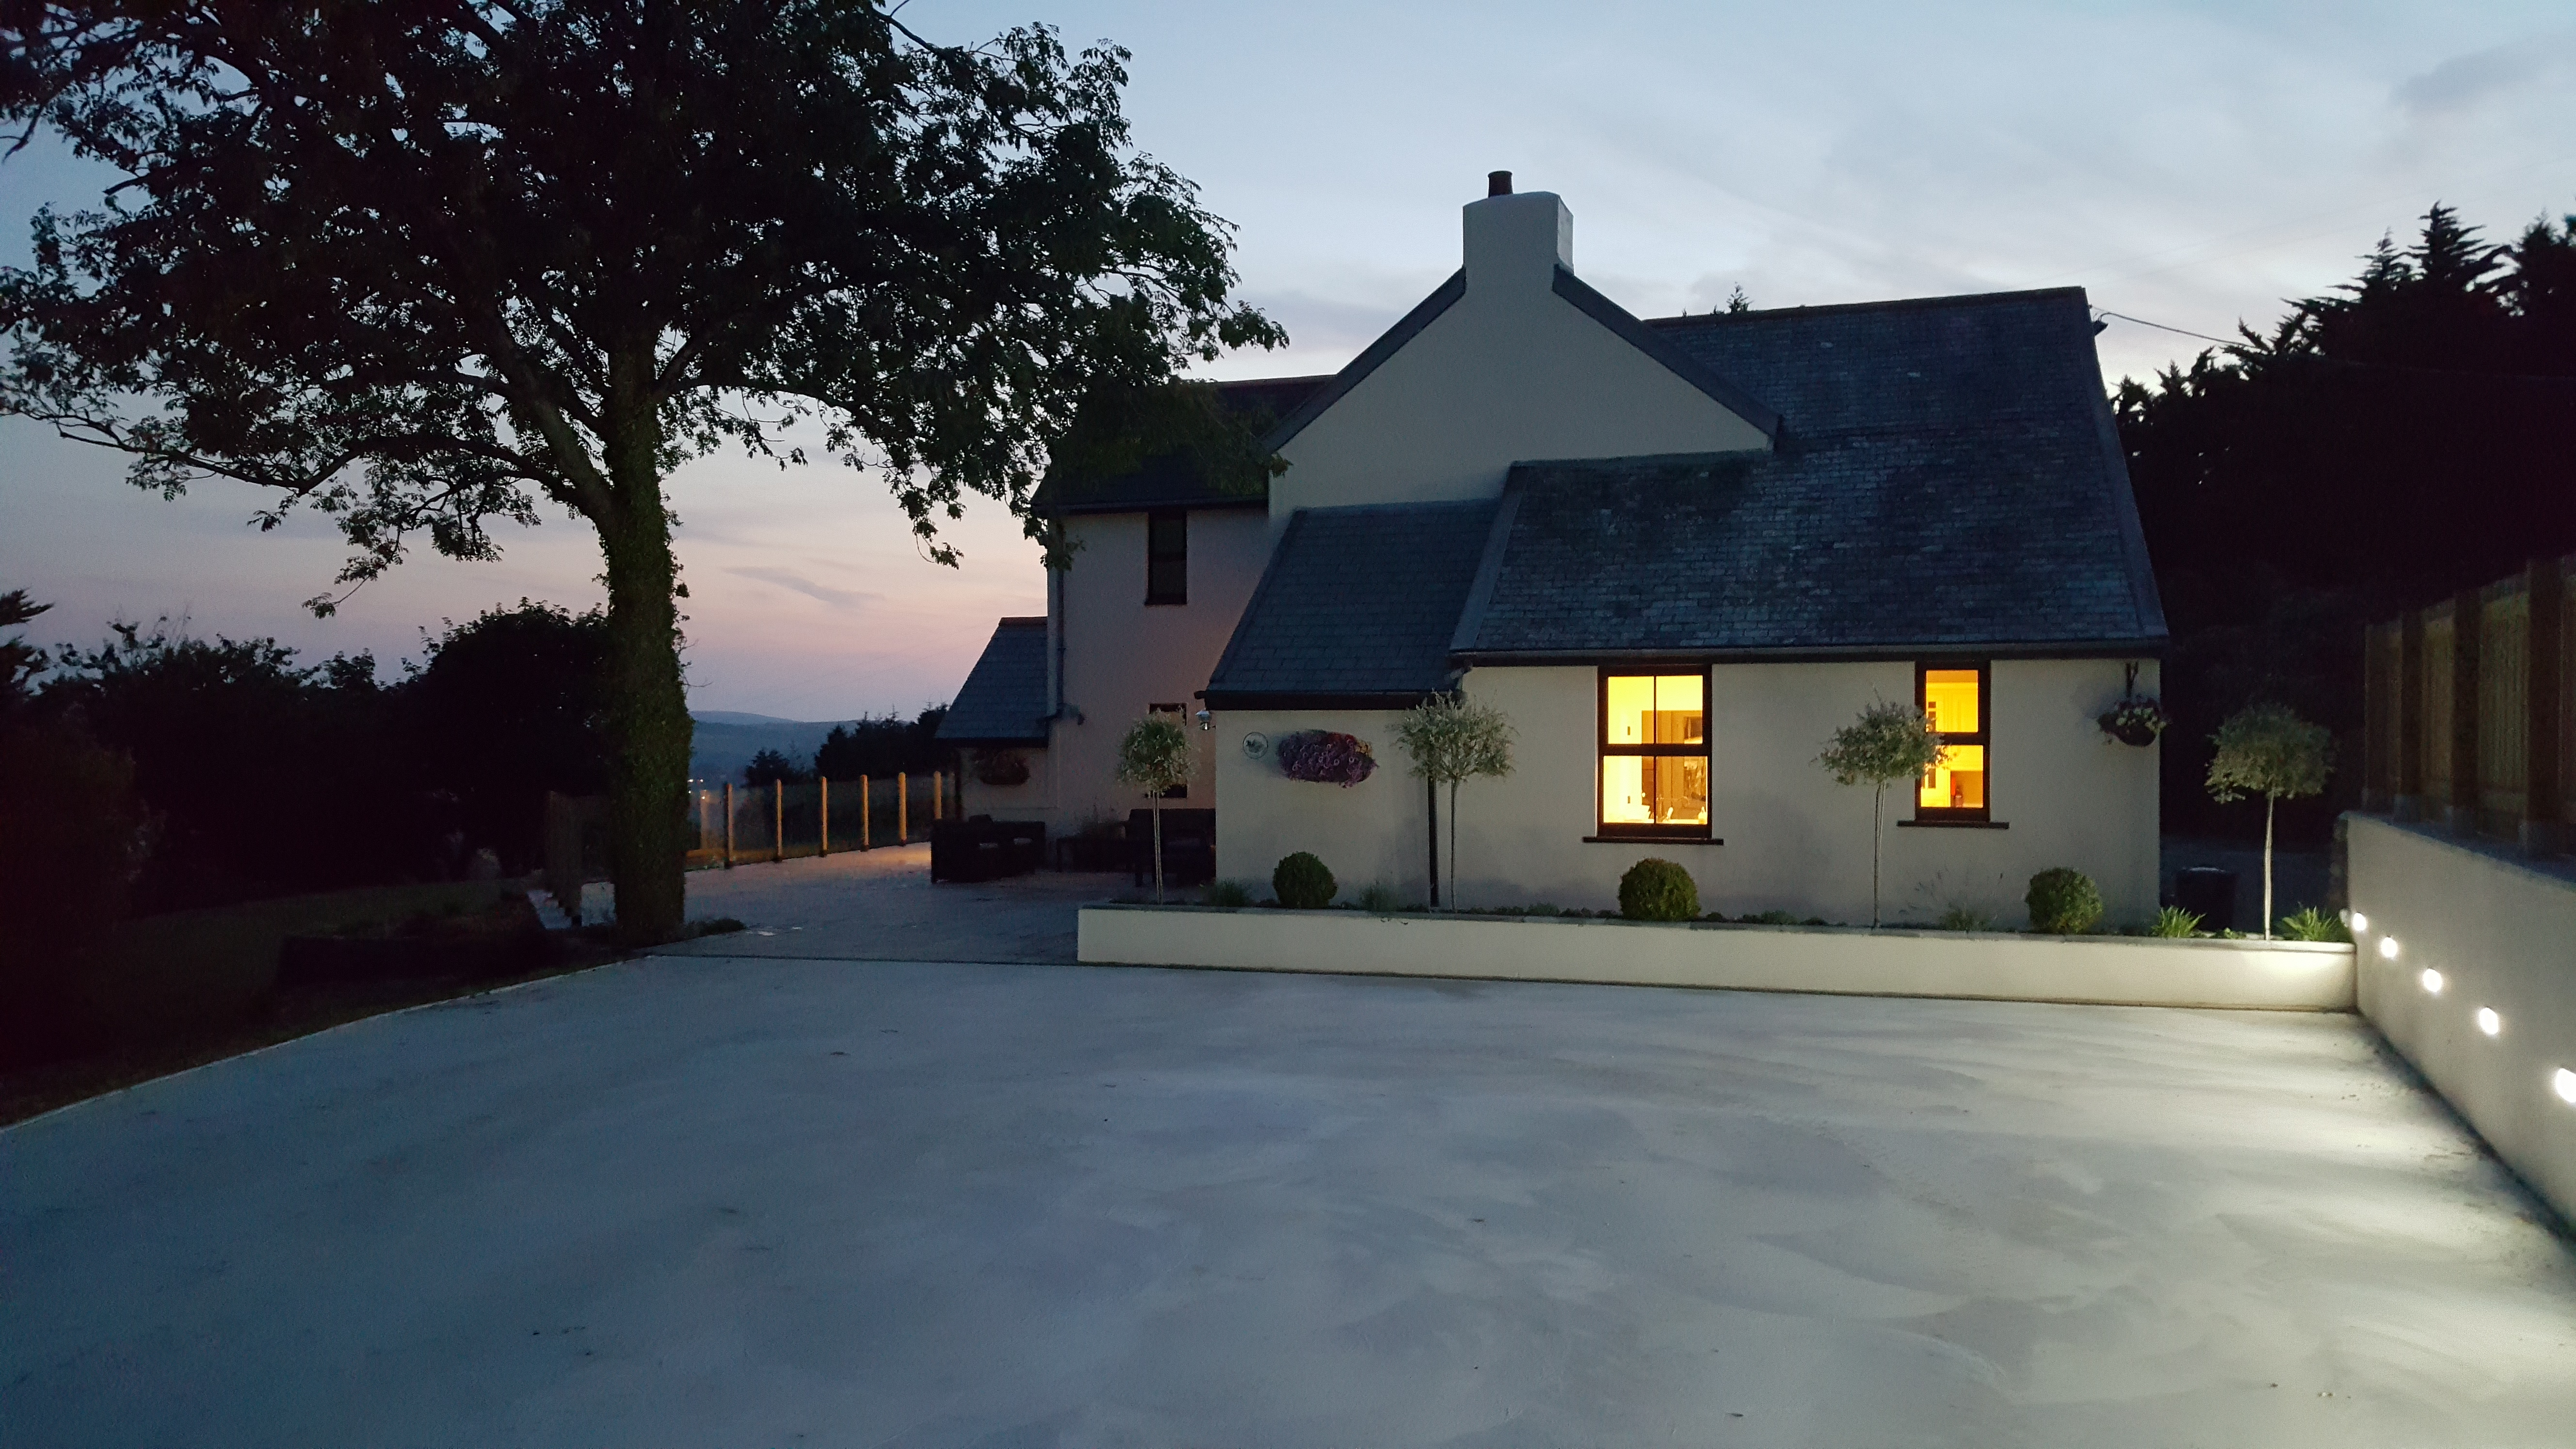 Smooth step-free drive and terrace at Superhost Sam's farm in Devonshire countryside in the UK